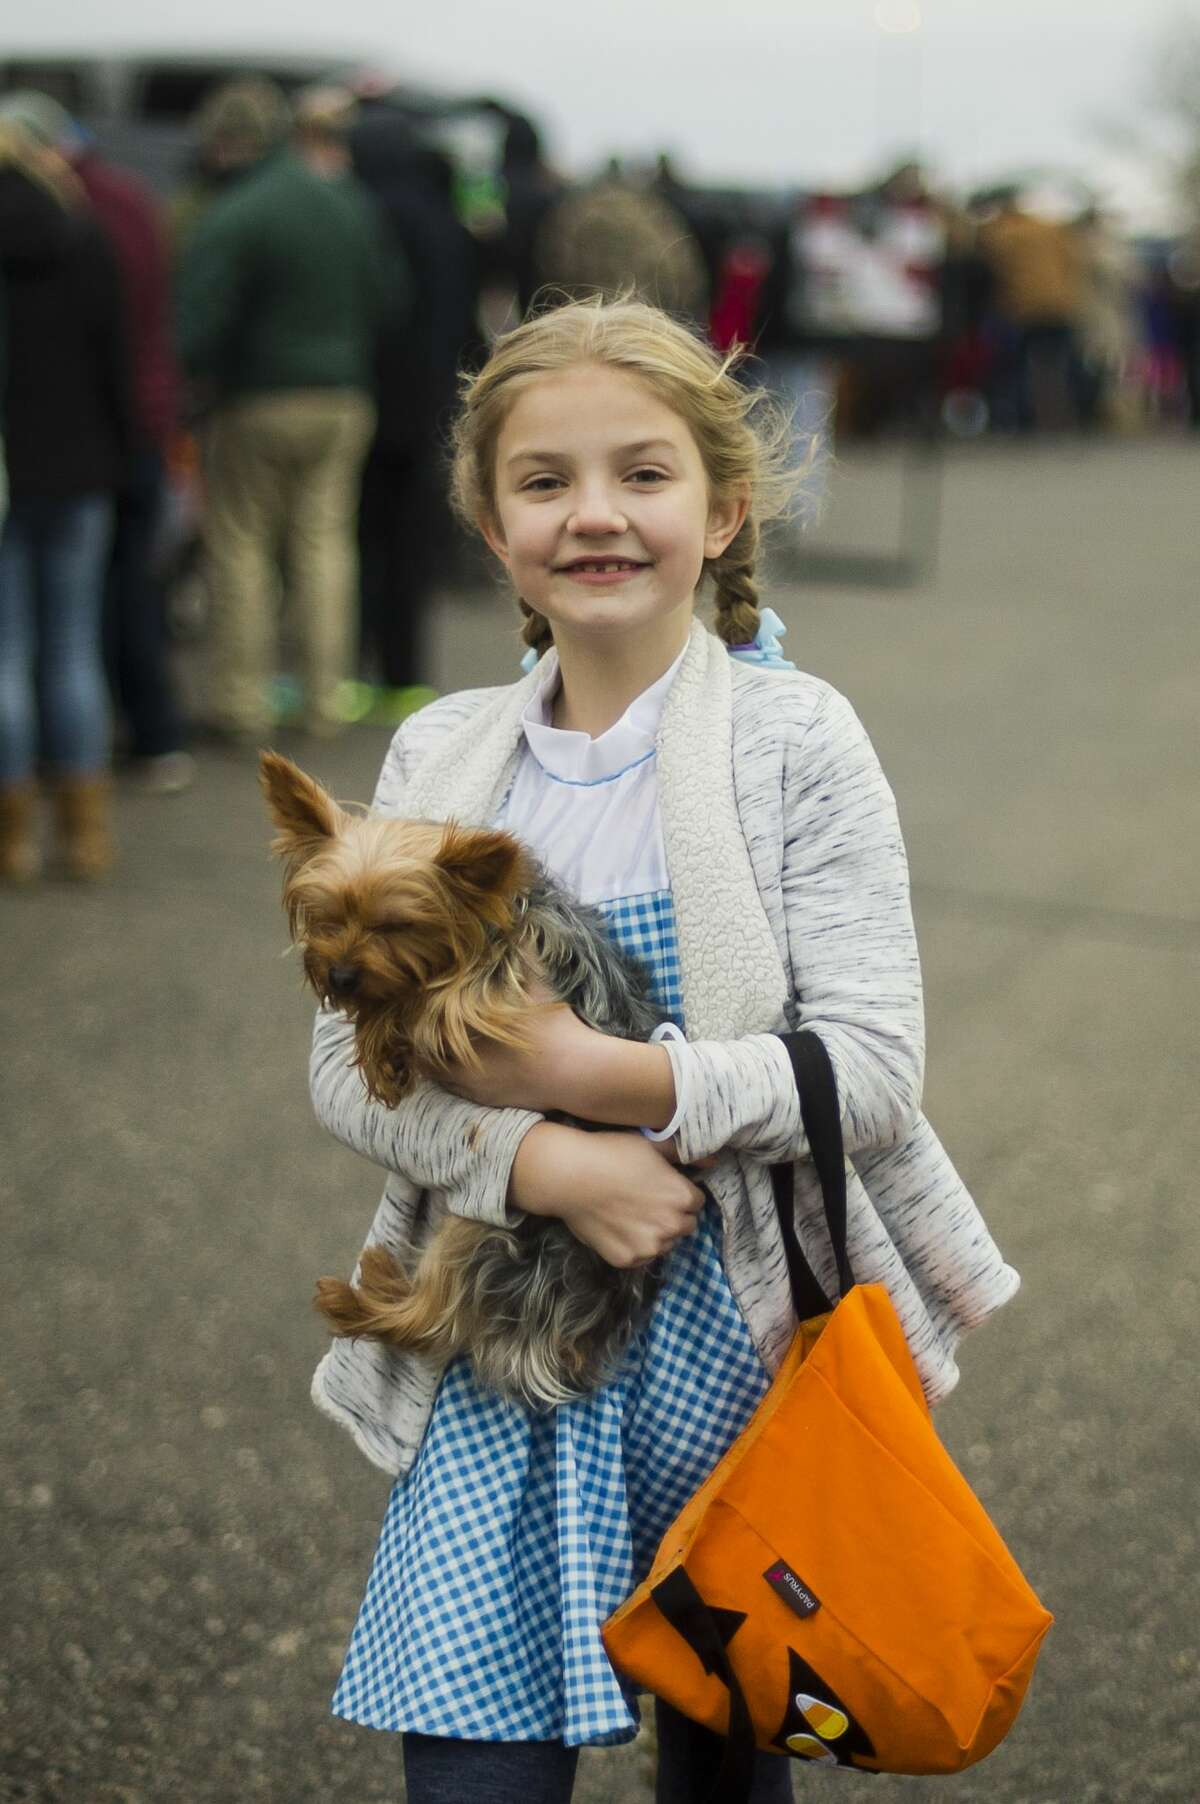 Hayley Schwanda, 10, dressed as Dorothy from the Wizard of Oz, collects candy during Trunk-N-Treat at Messiah Lutheran Church on Tuesday, Oct. 31, 2017 in Midland. (Katy Kildee/kkildee@mdn.net)